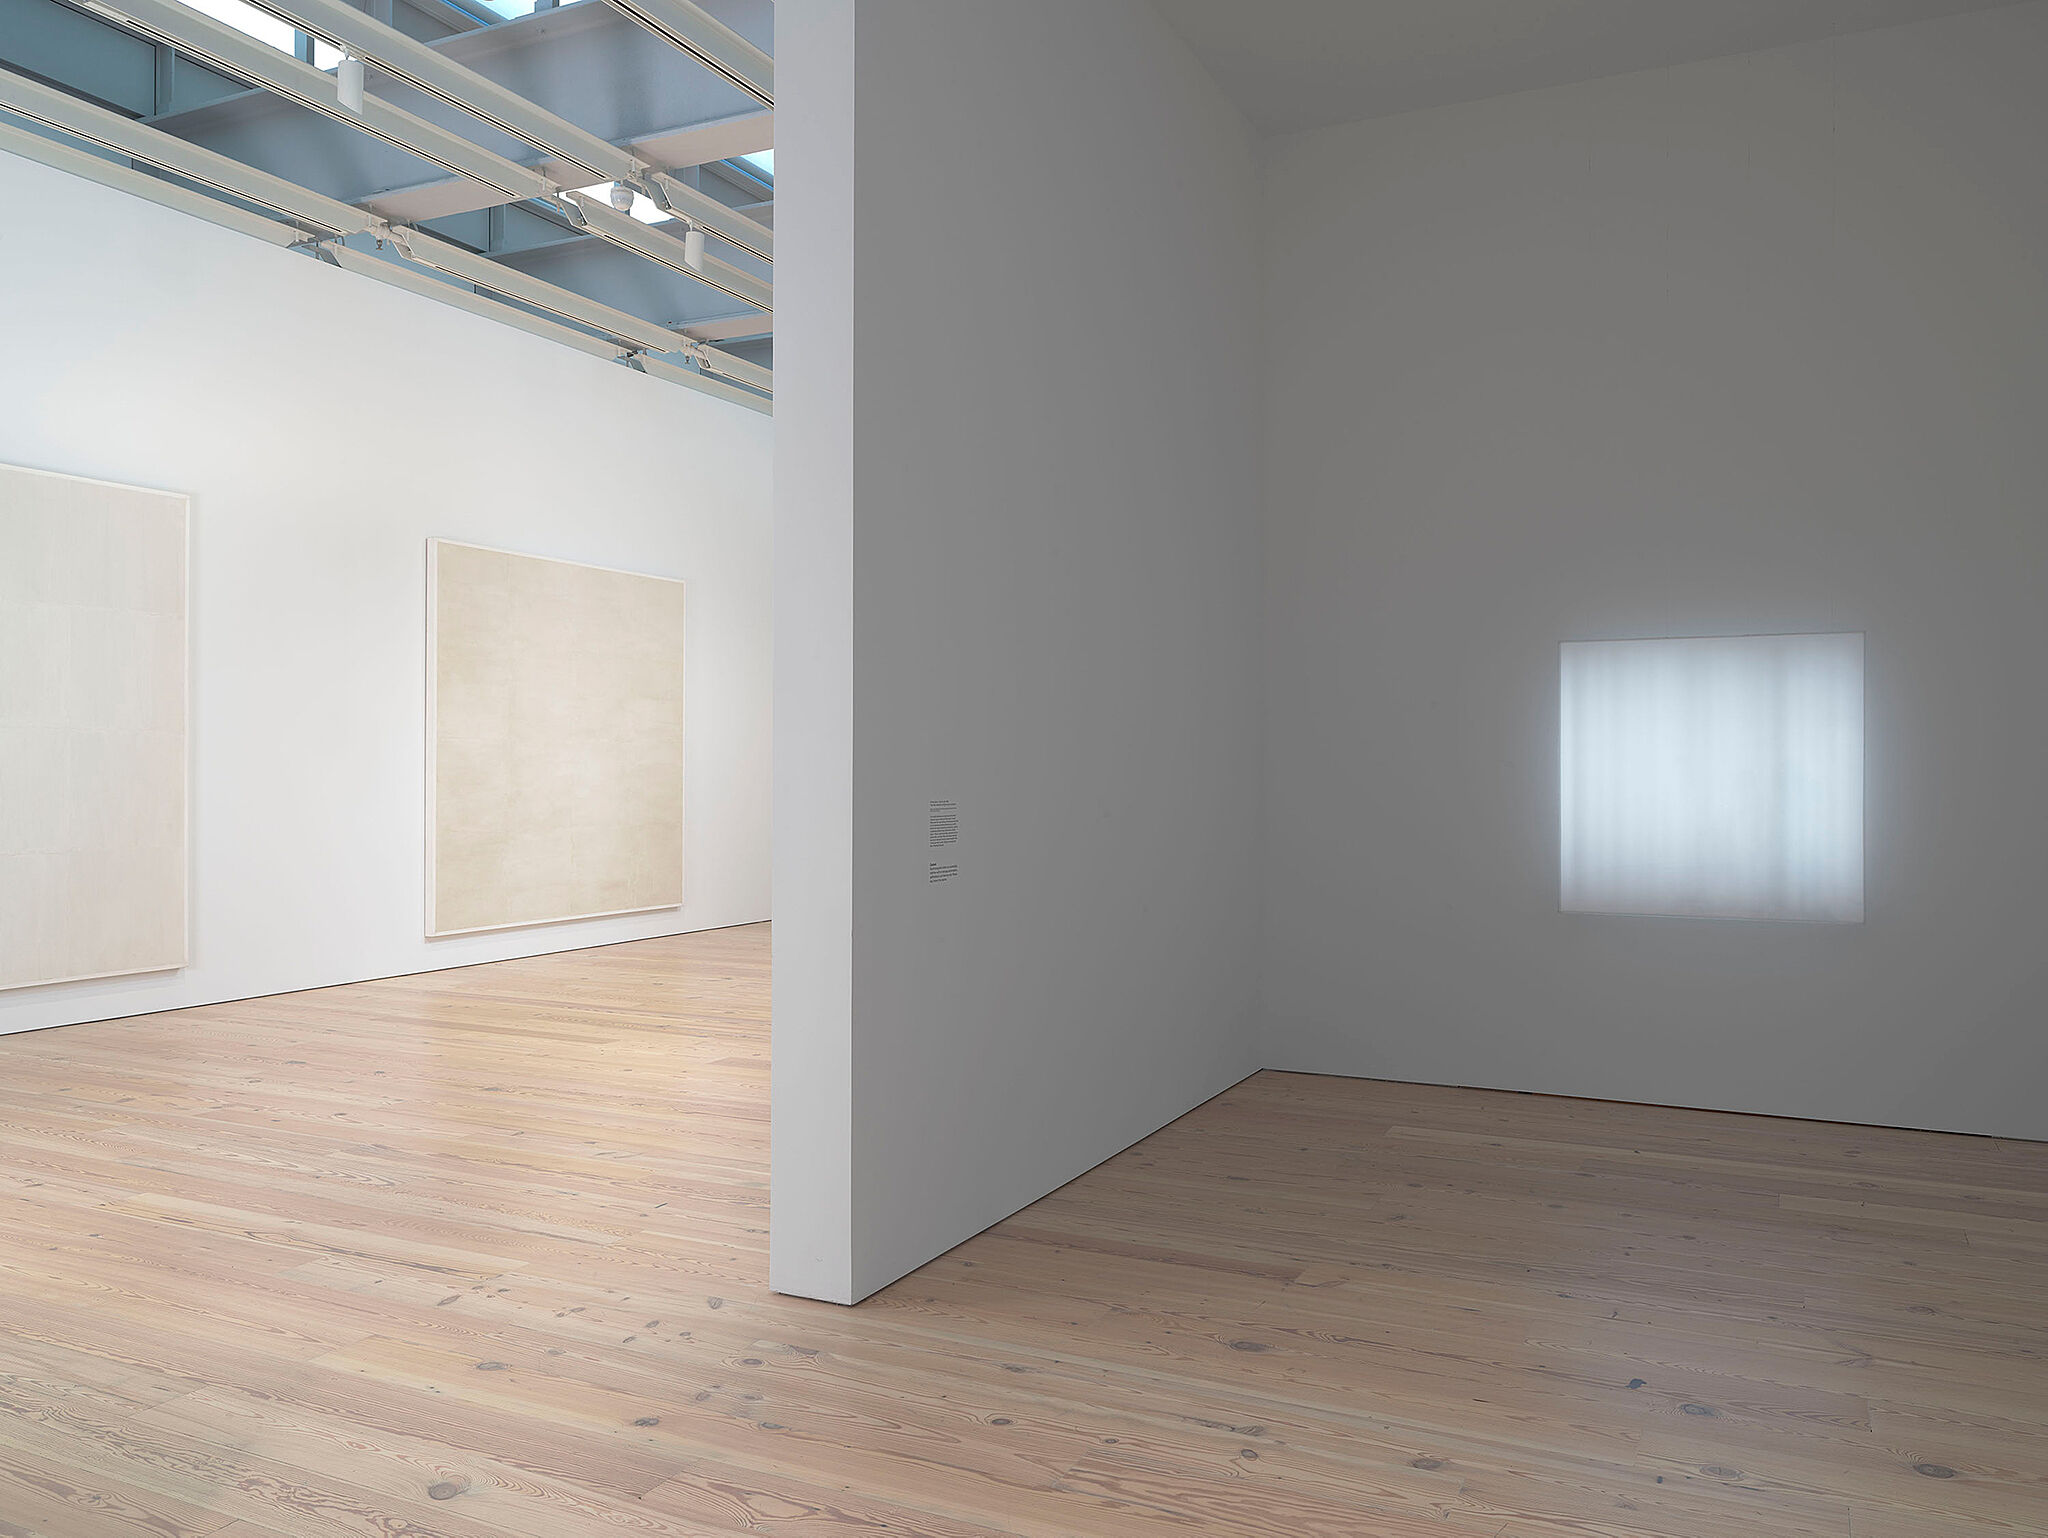 Installation view of Mary Corse works at the Whitney Museum